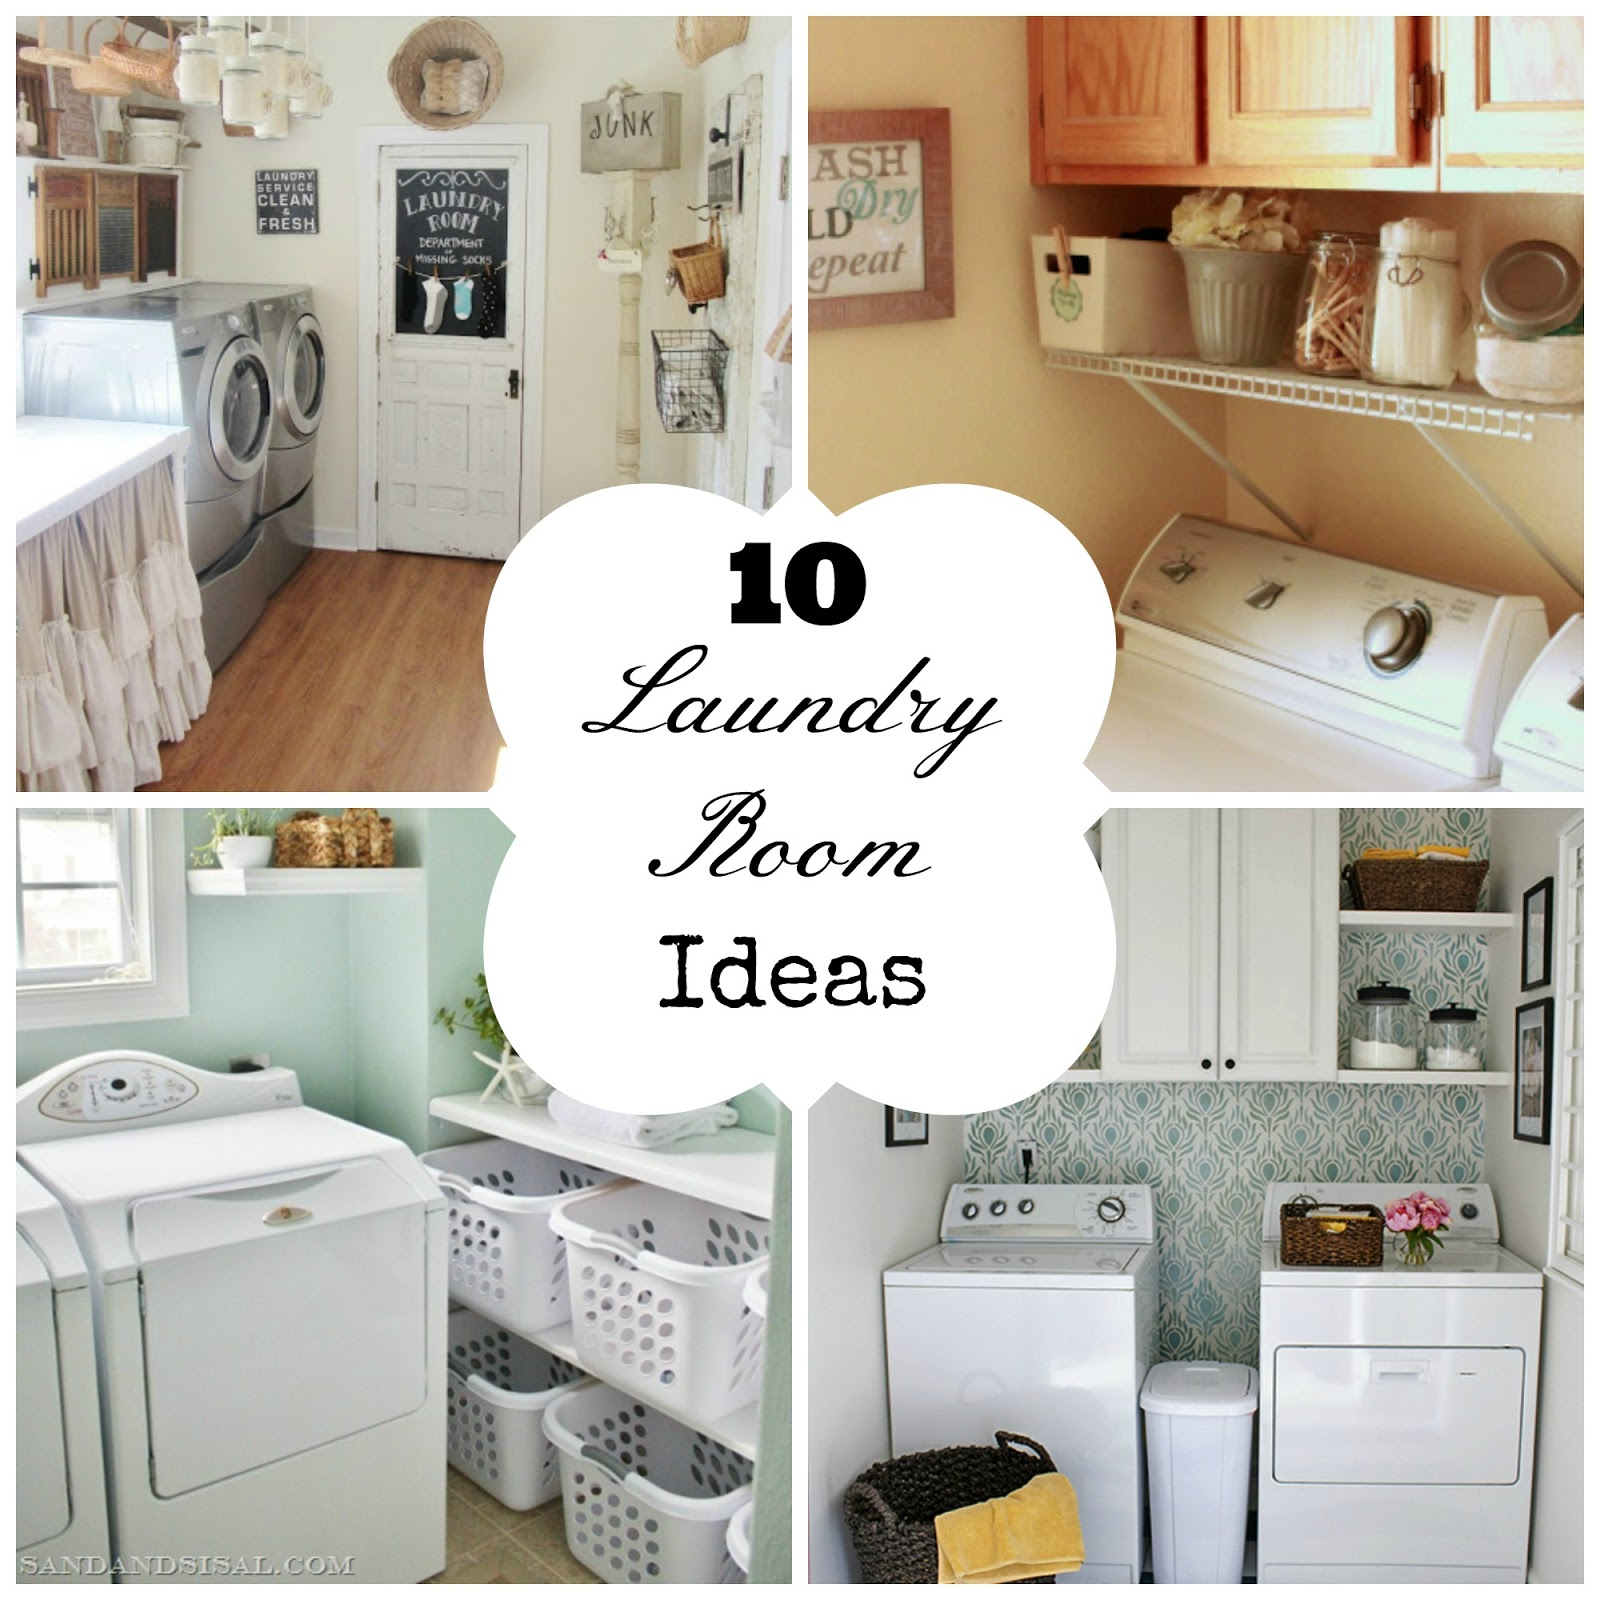 10 Laundry Room Ideas Fun Home Things